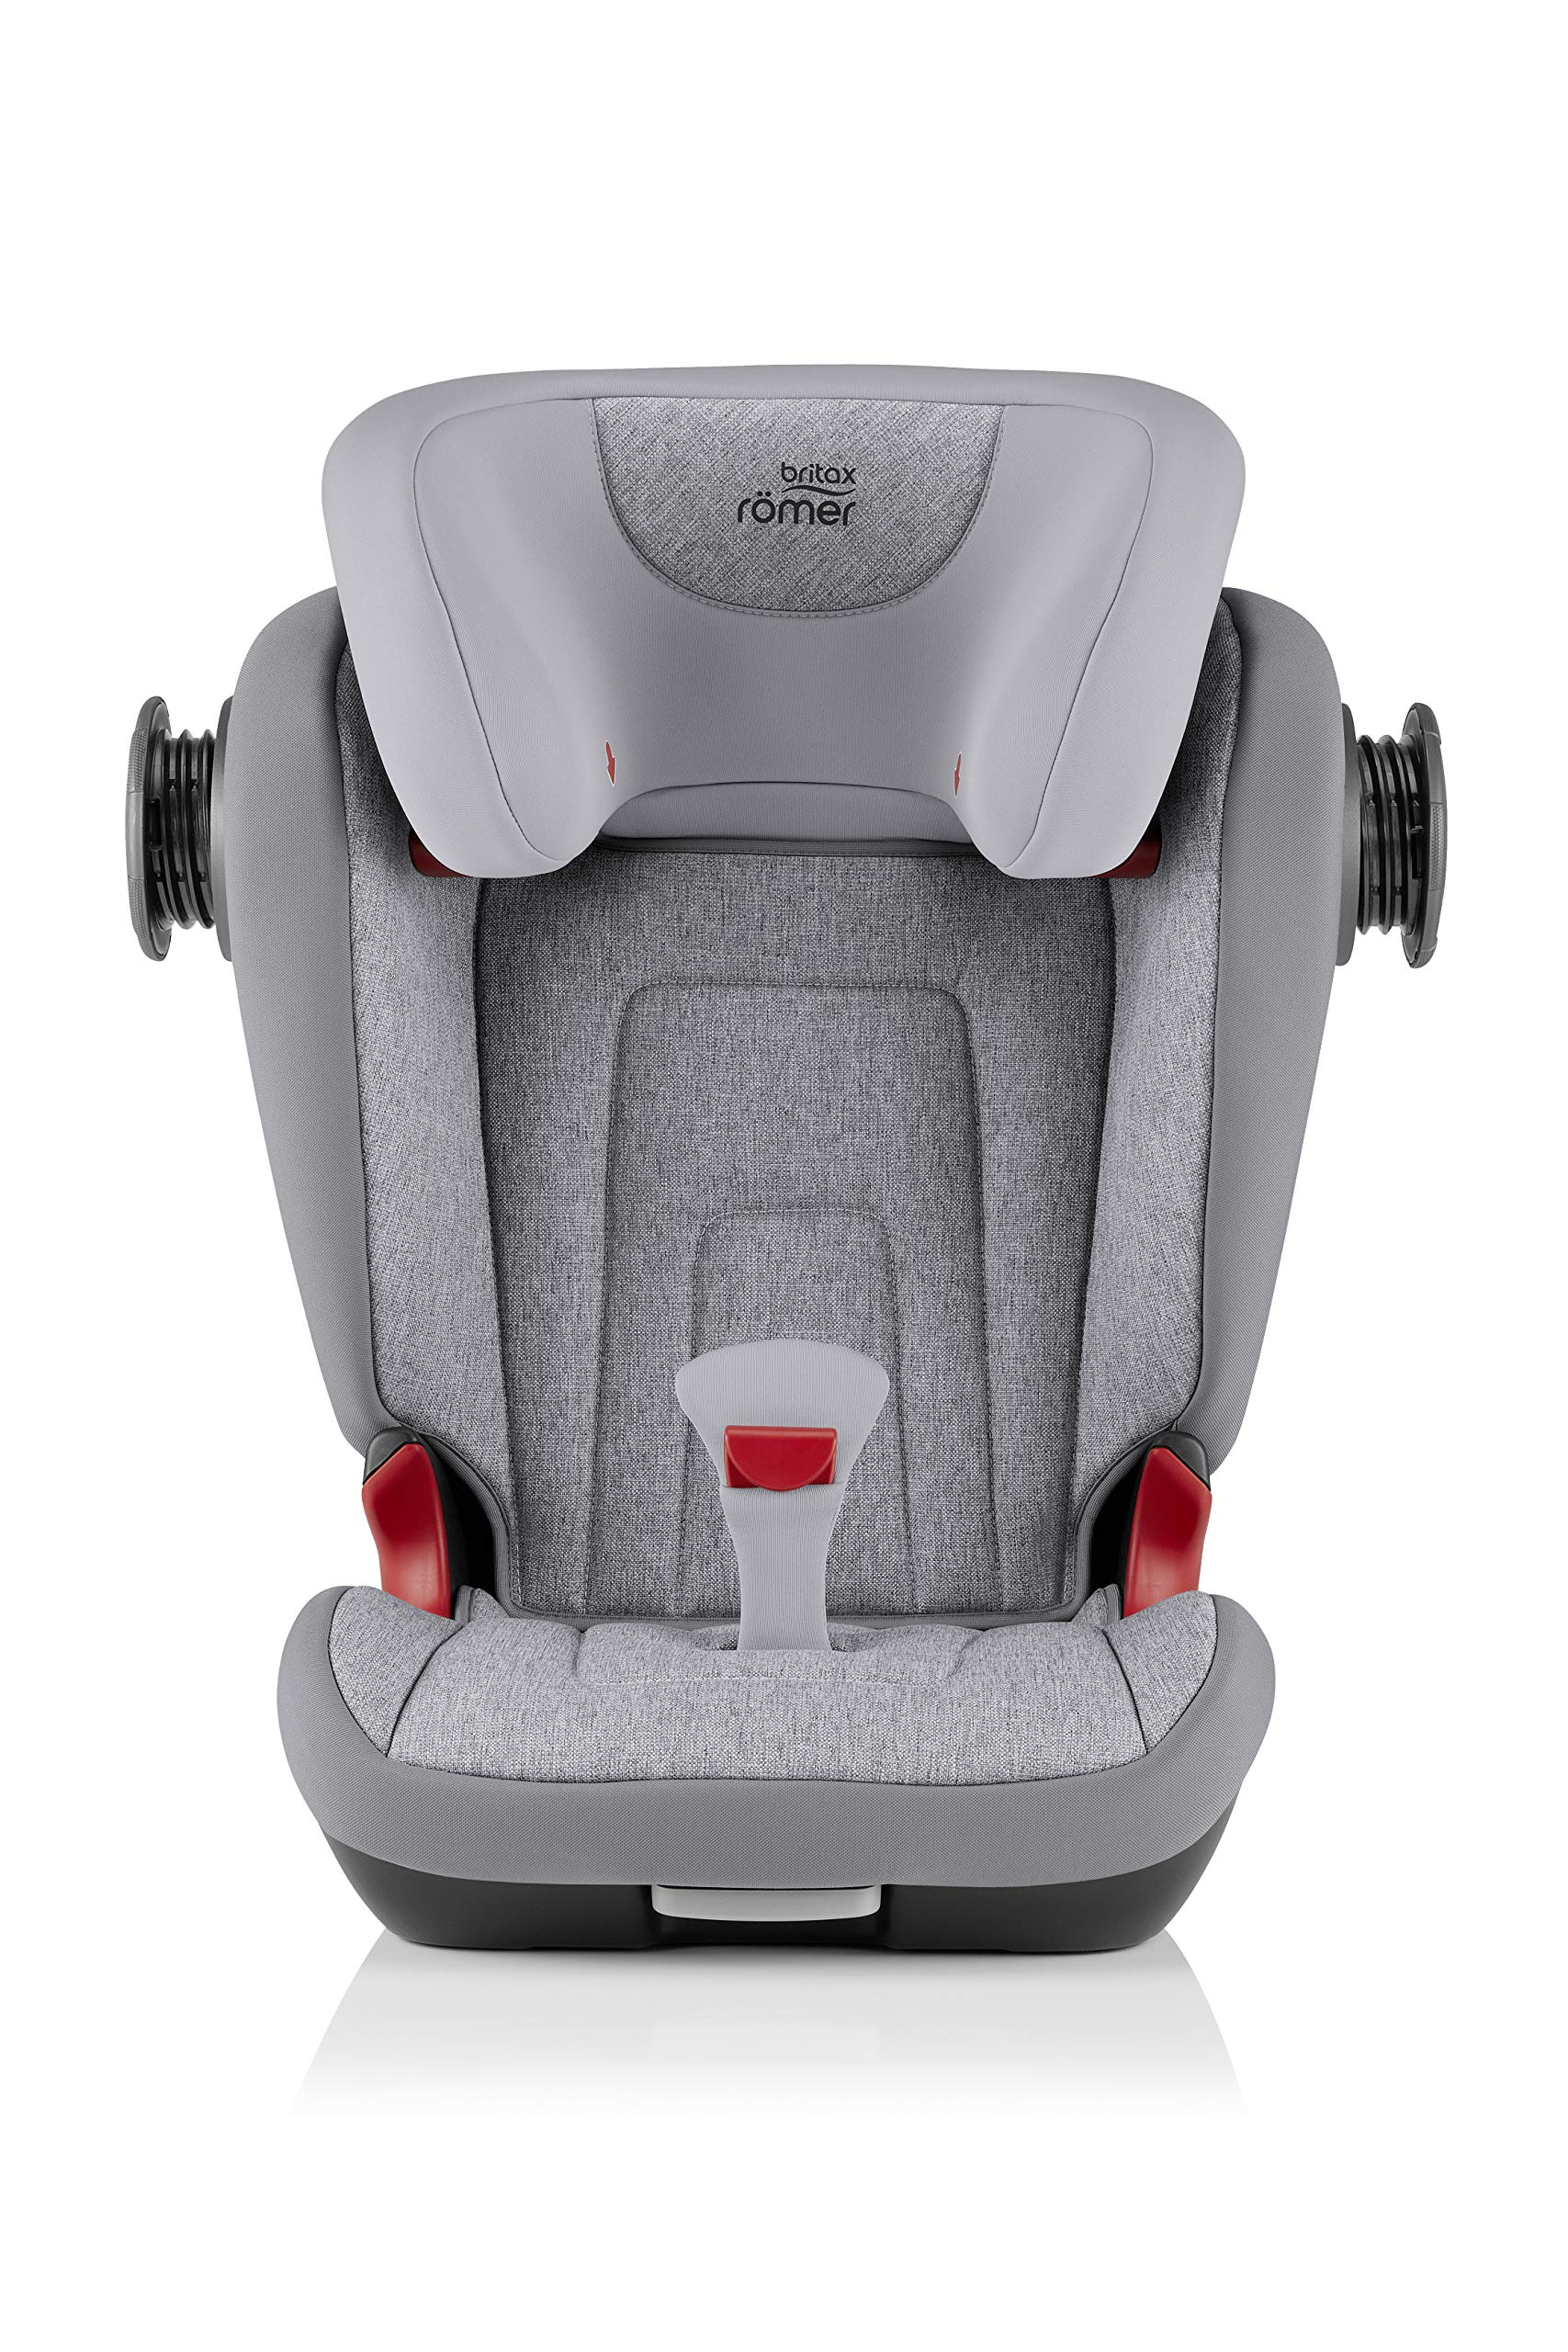 Britax Römer KIDFIX² S Group 2-3 (15-36kg) Car Seat - Grey Marble  Advanced side impact protection - sict offers superior protection to your child in the event of a side collision. reducing impact forces by minimising the distance between the car and the car seat. Secure guard - helps to protect your child's delicate abdominal area by adding an extra - a 4th - contact point to the 3-point seat belt. High back booster - protects your child in 3 ways: provides head to hip protection; belt guides provide correct positioning of the seat belt and the padded headrest provides safety and comfort. 6